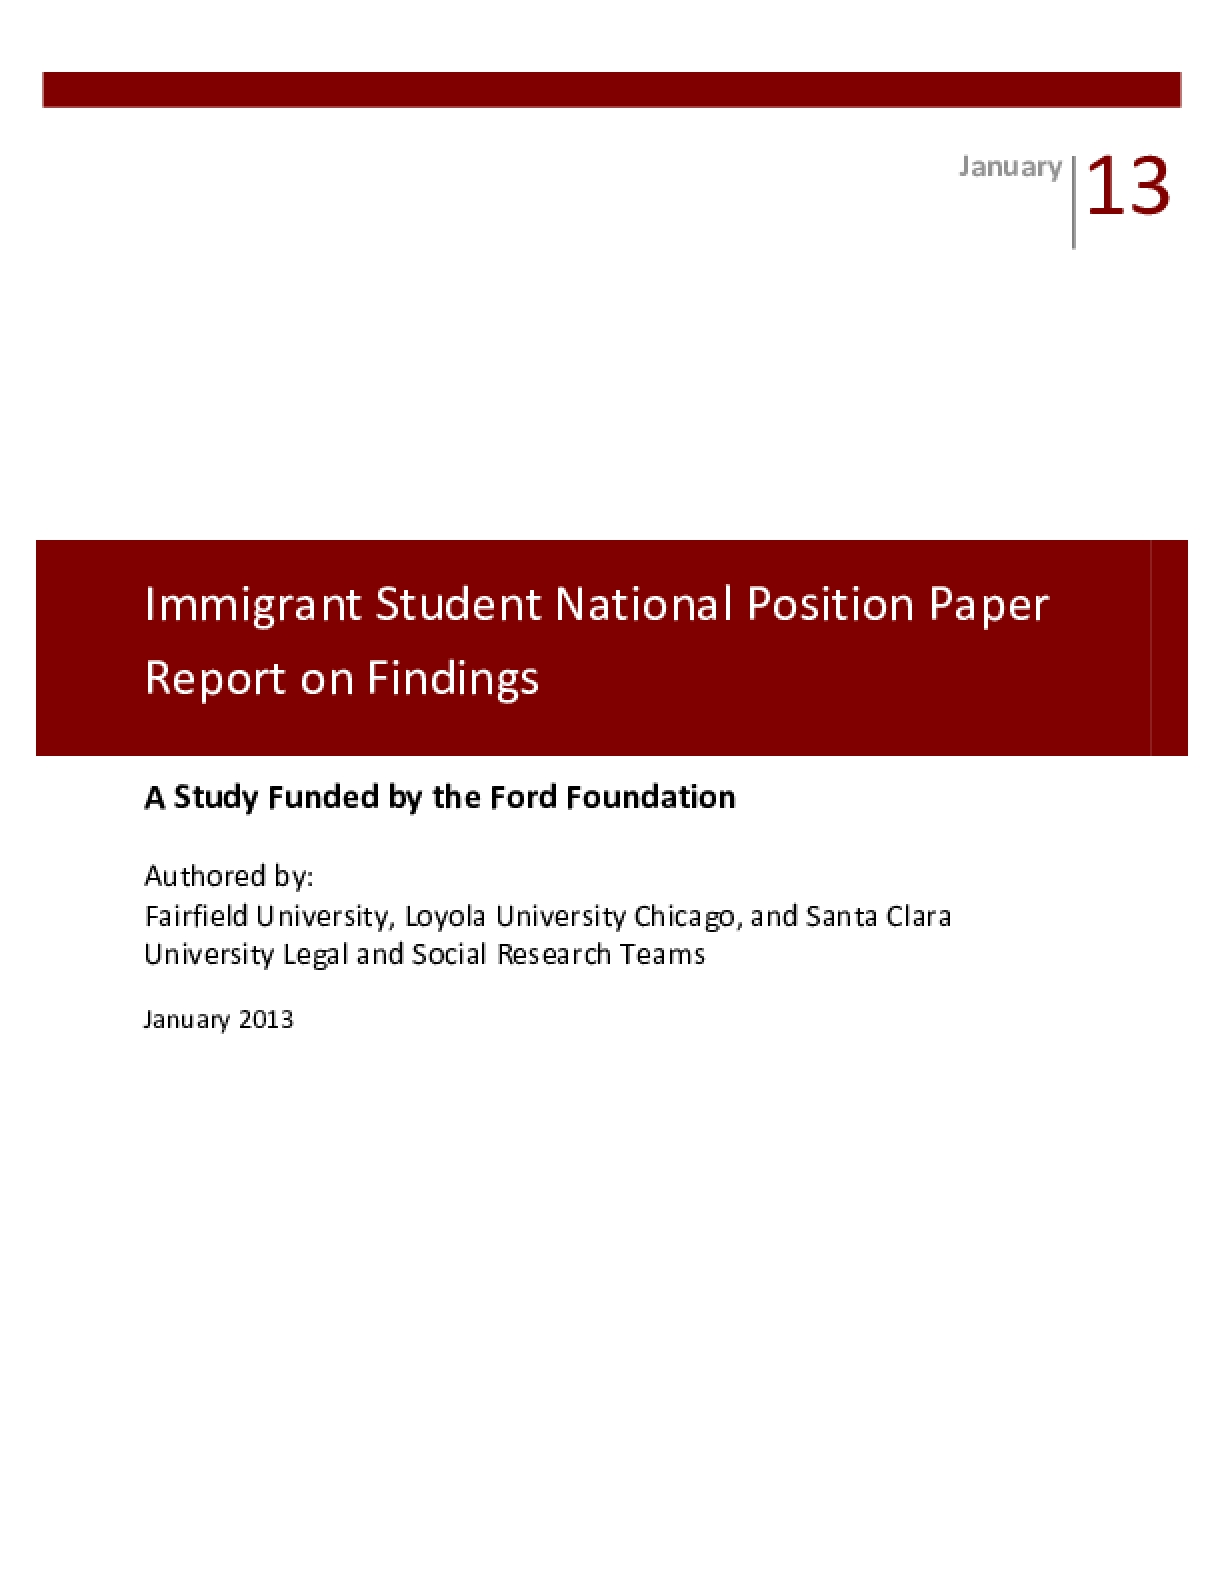 Immigrant Student National Position Paper Report on Findings